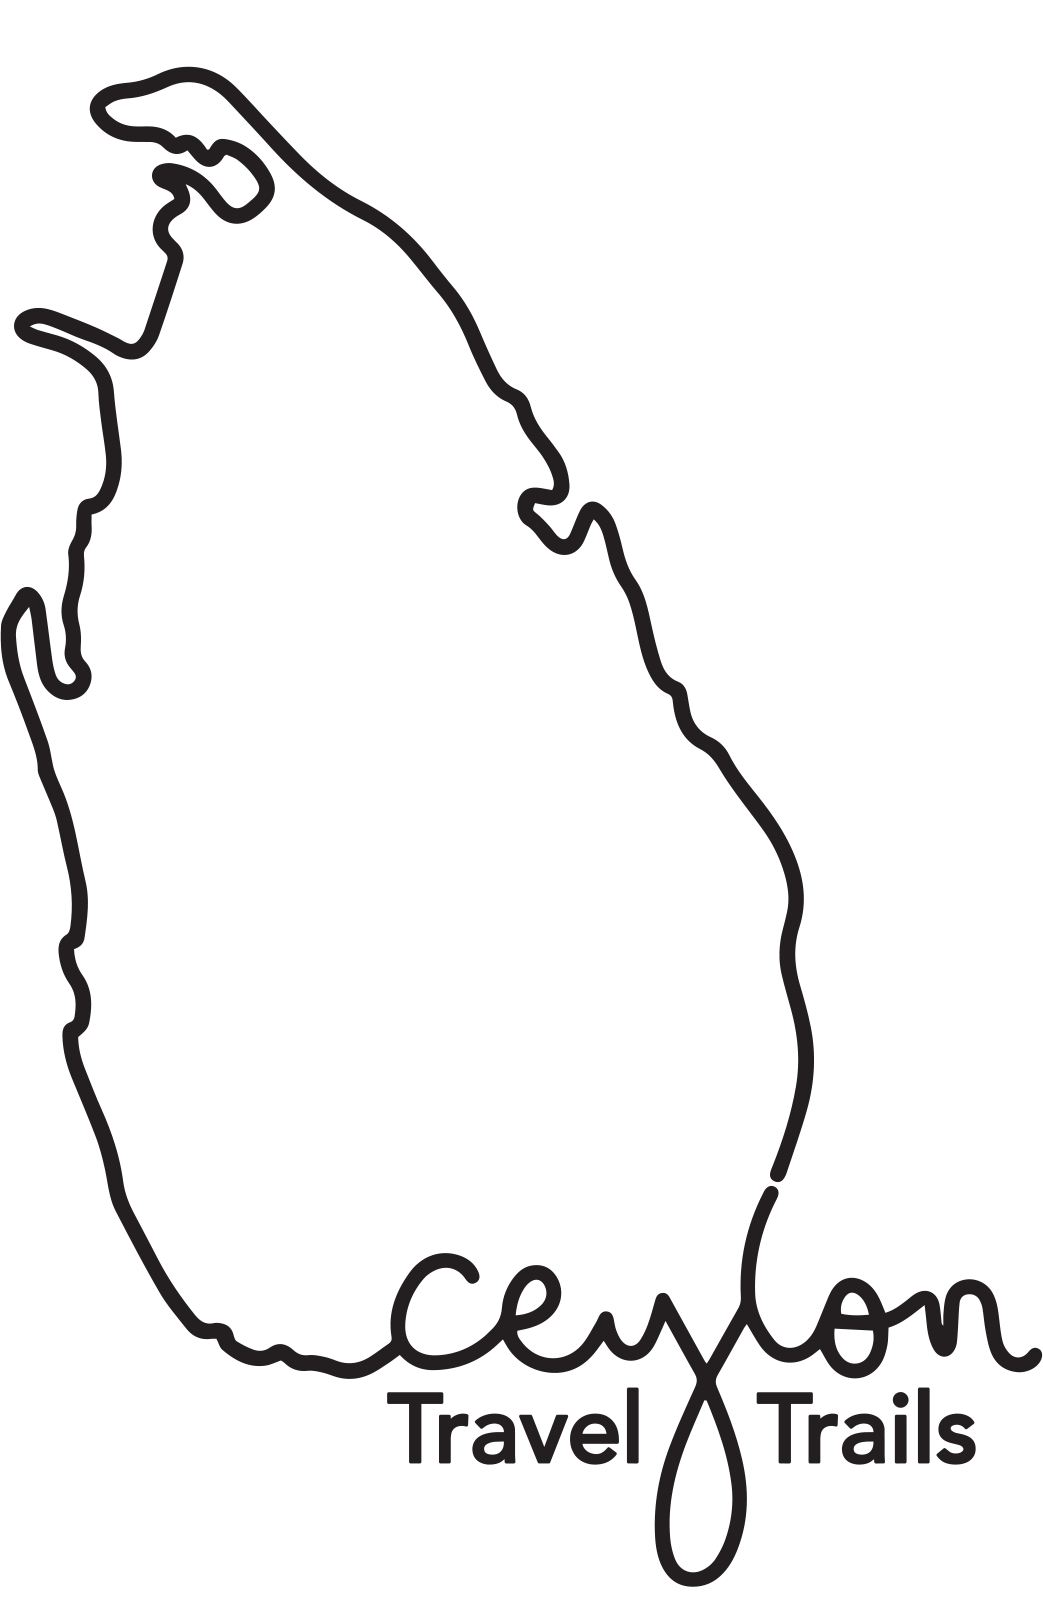 Ceylon Travel Trails